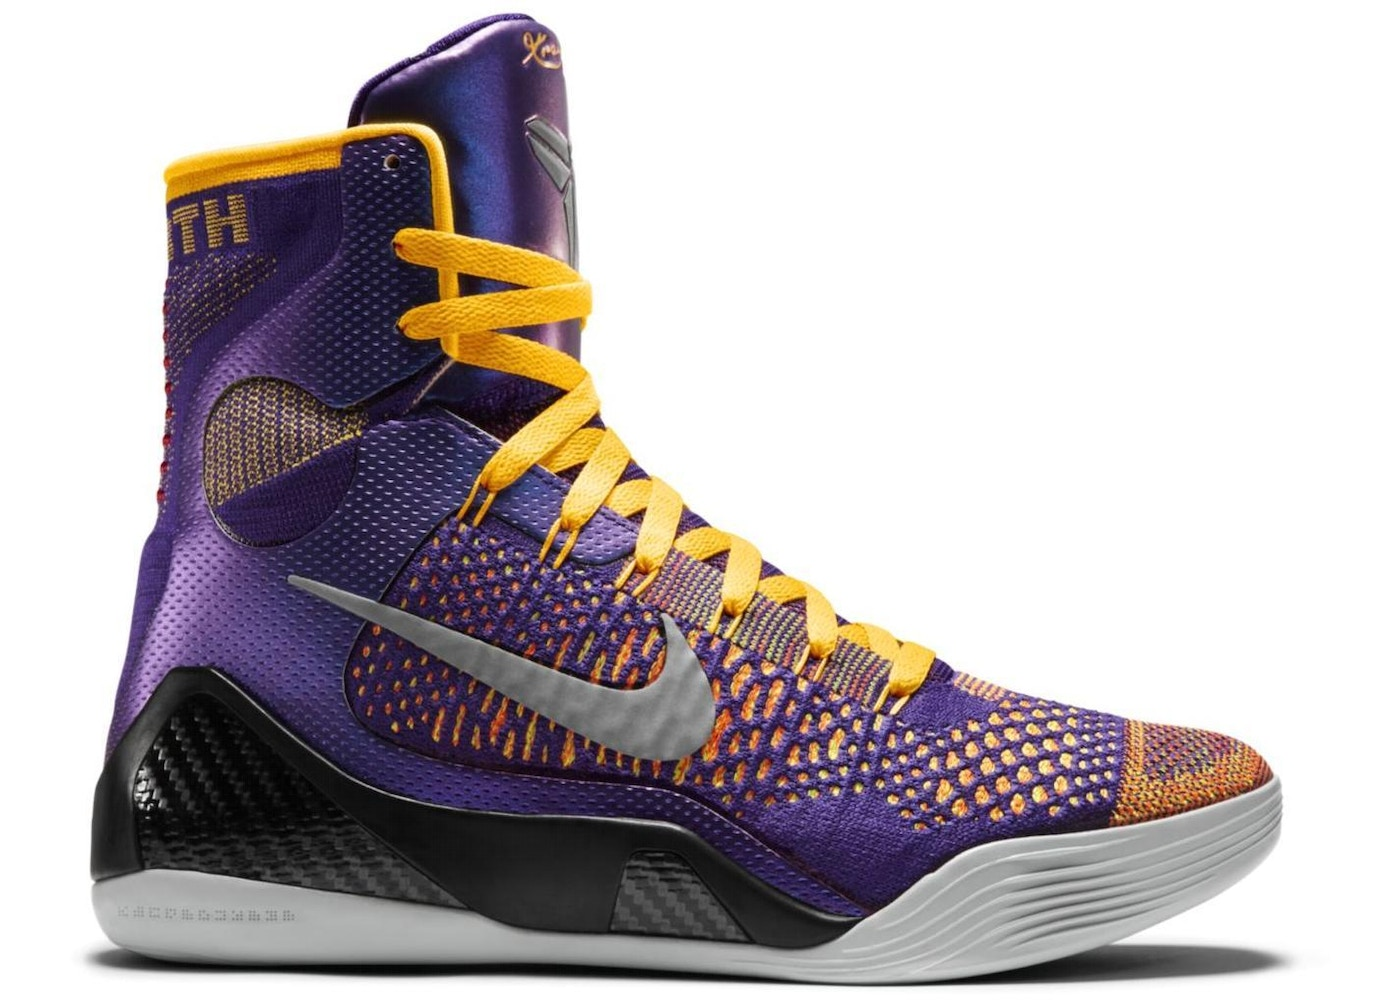 online retailer f5d78 78ac1 Kobe 9 Elite Team Showtime - 630847-500